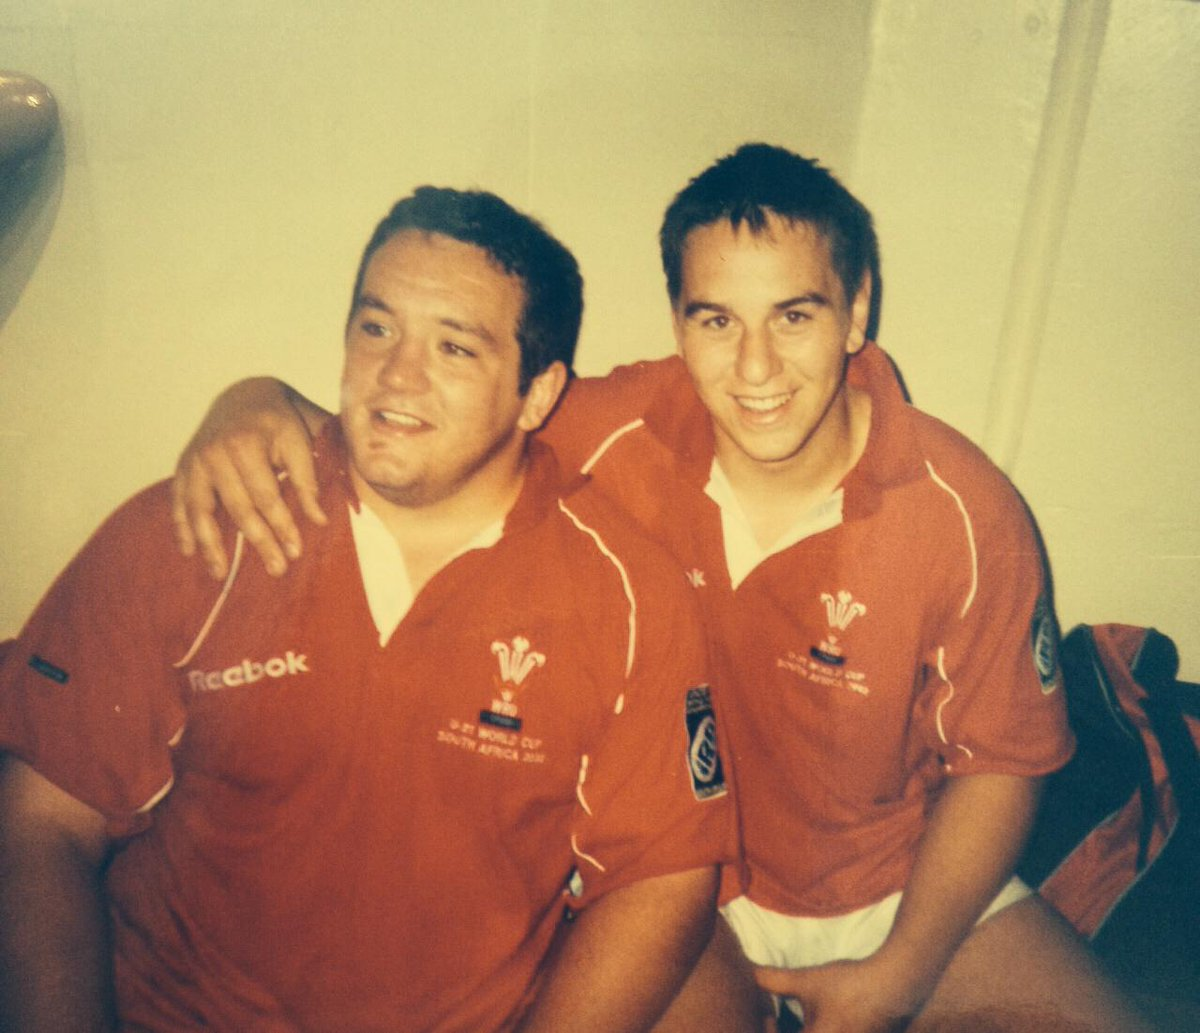 Throwback to fresh faced @adamjones3 & @RyanJonesOnline. Can you guess what year this photo was taken? http://t.co/mwi7Cebsja